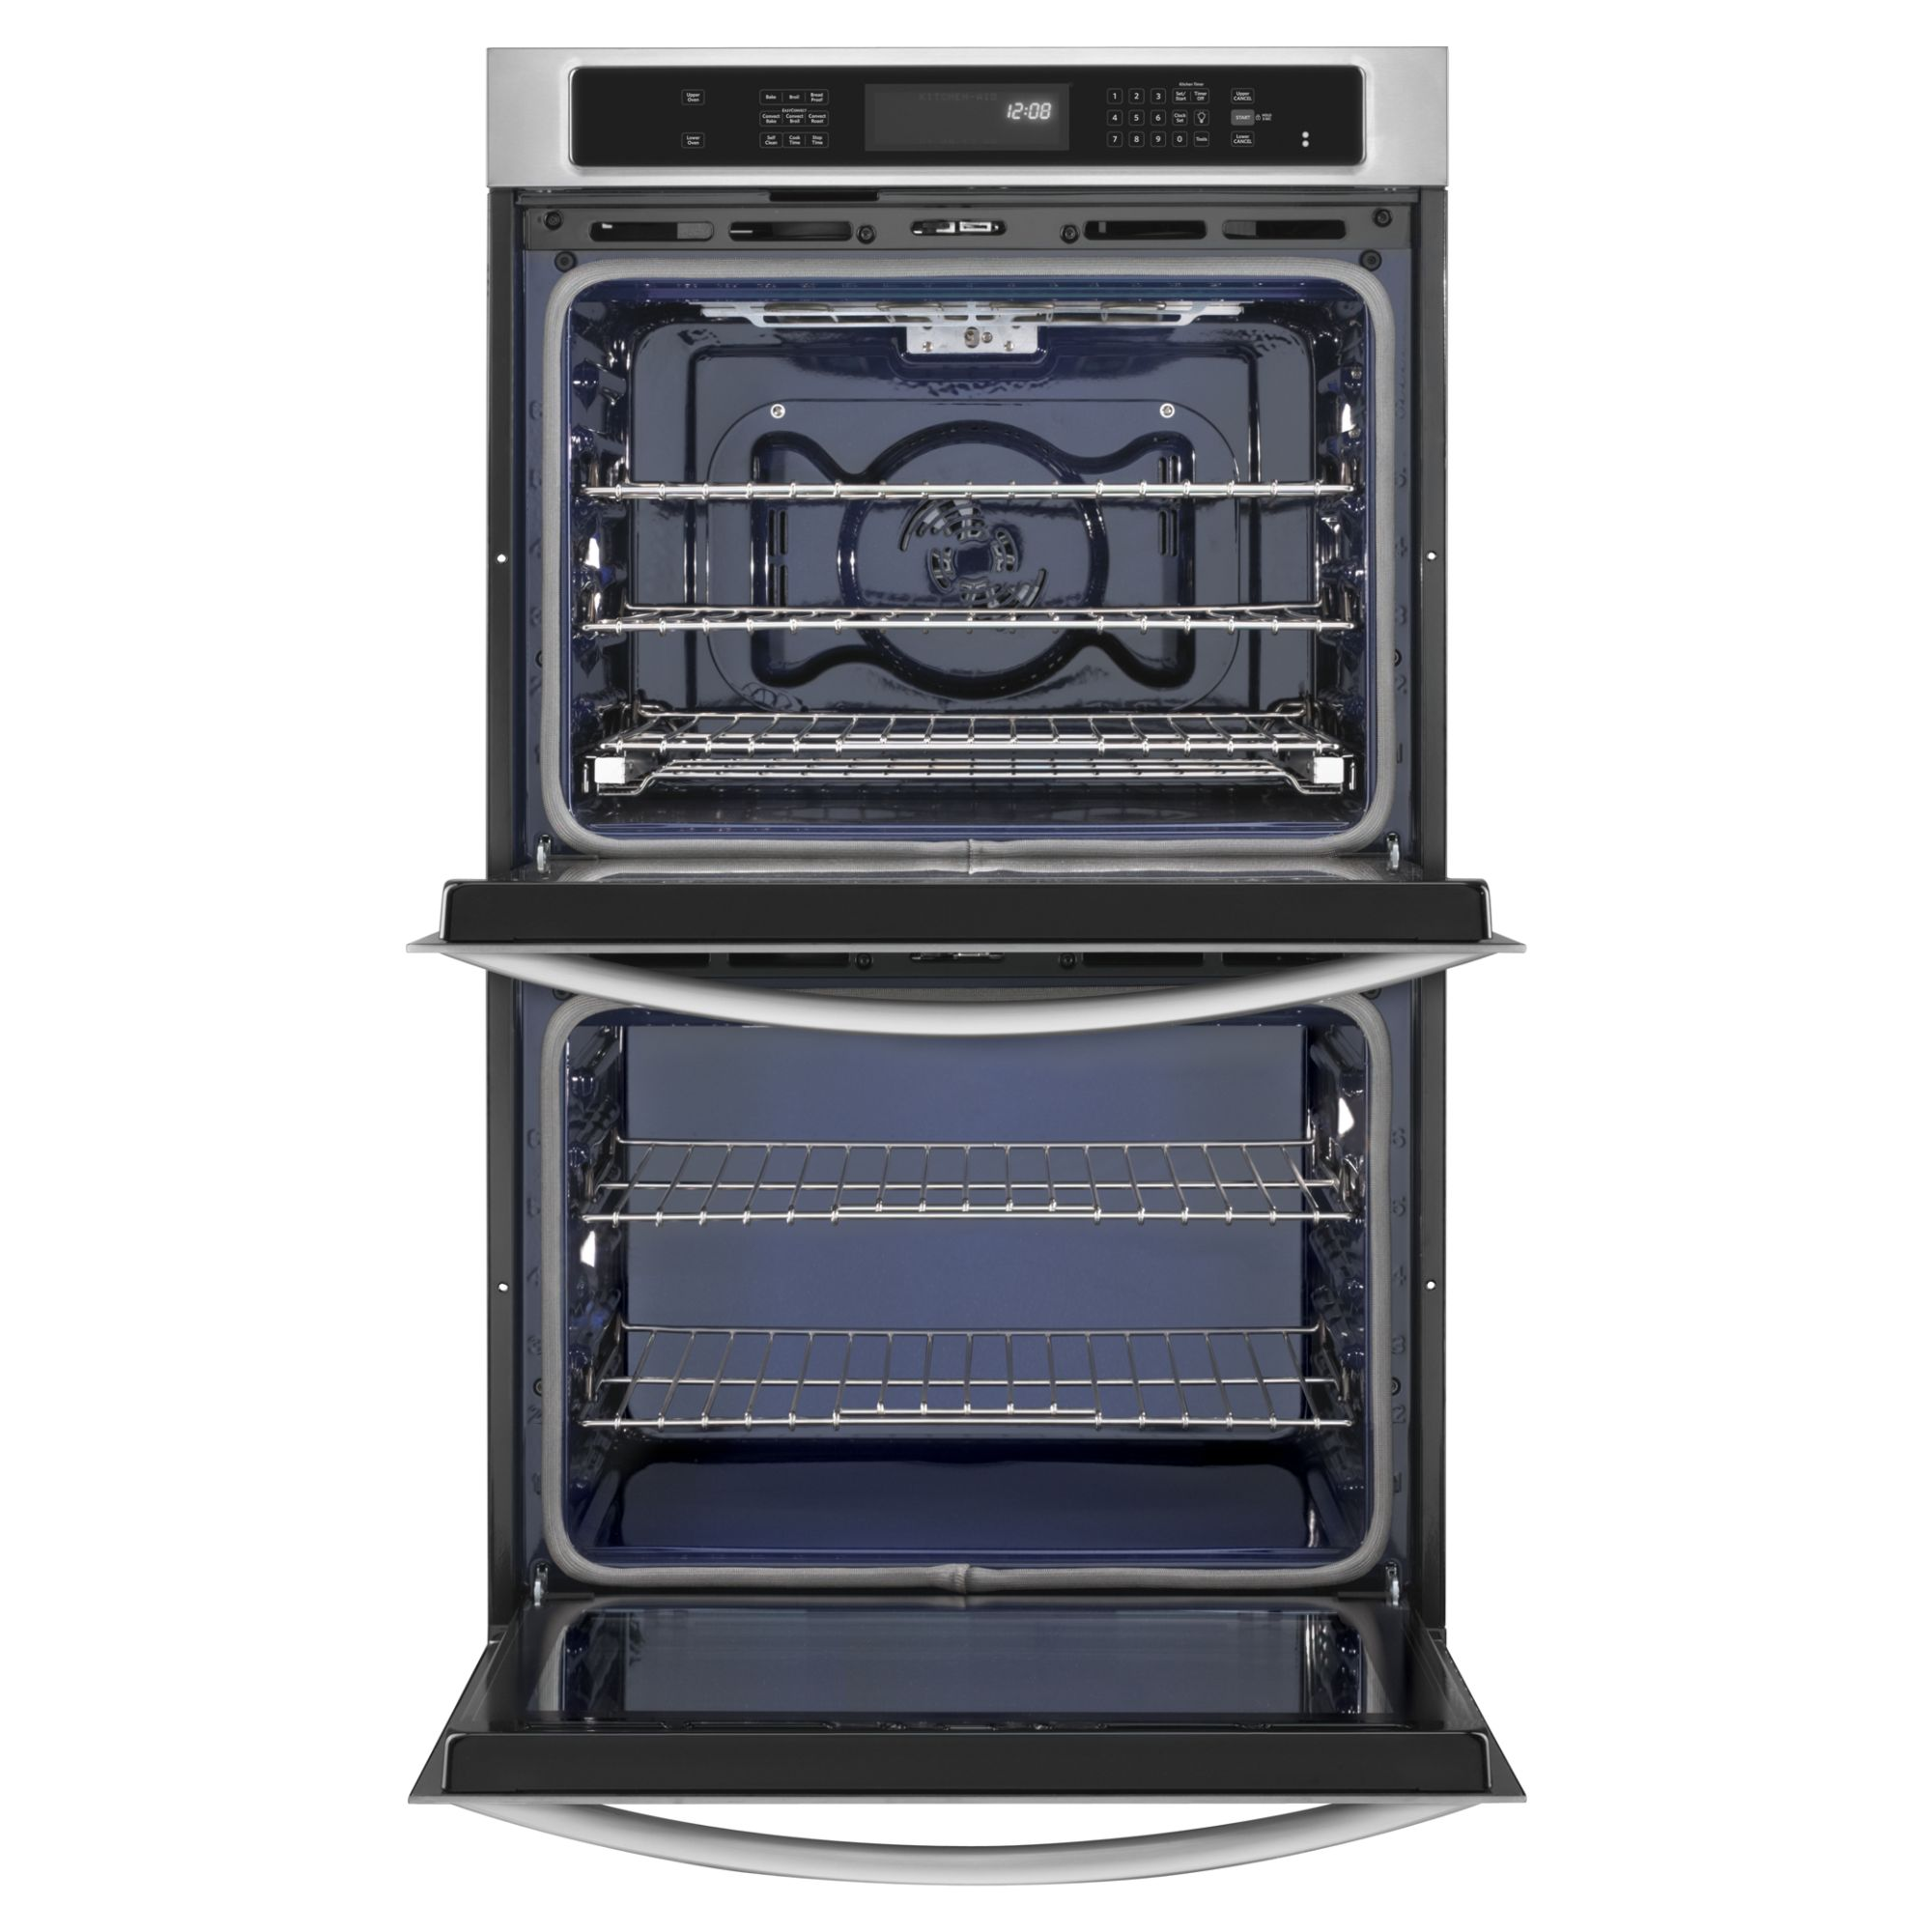 "KitchenAid 30"" Built-in Double Oven with Even-Heat™ Technology - Stainless Steel"